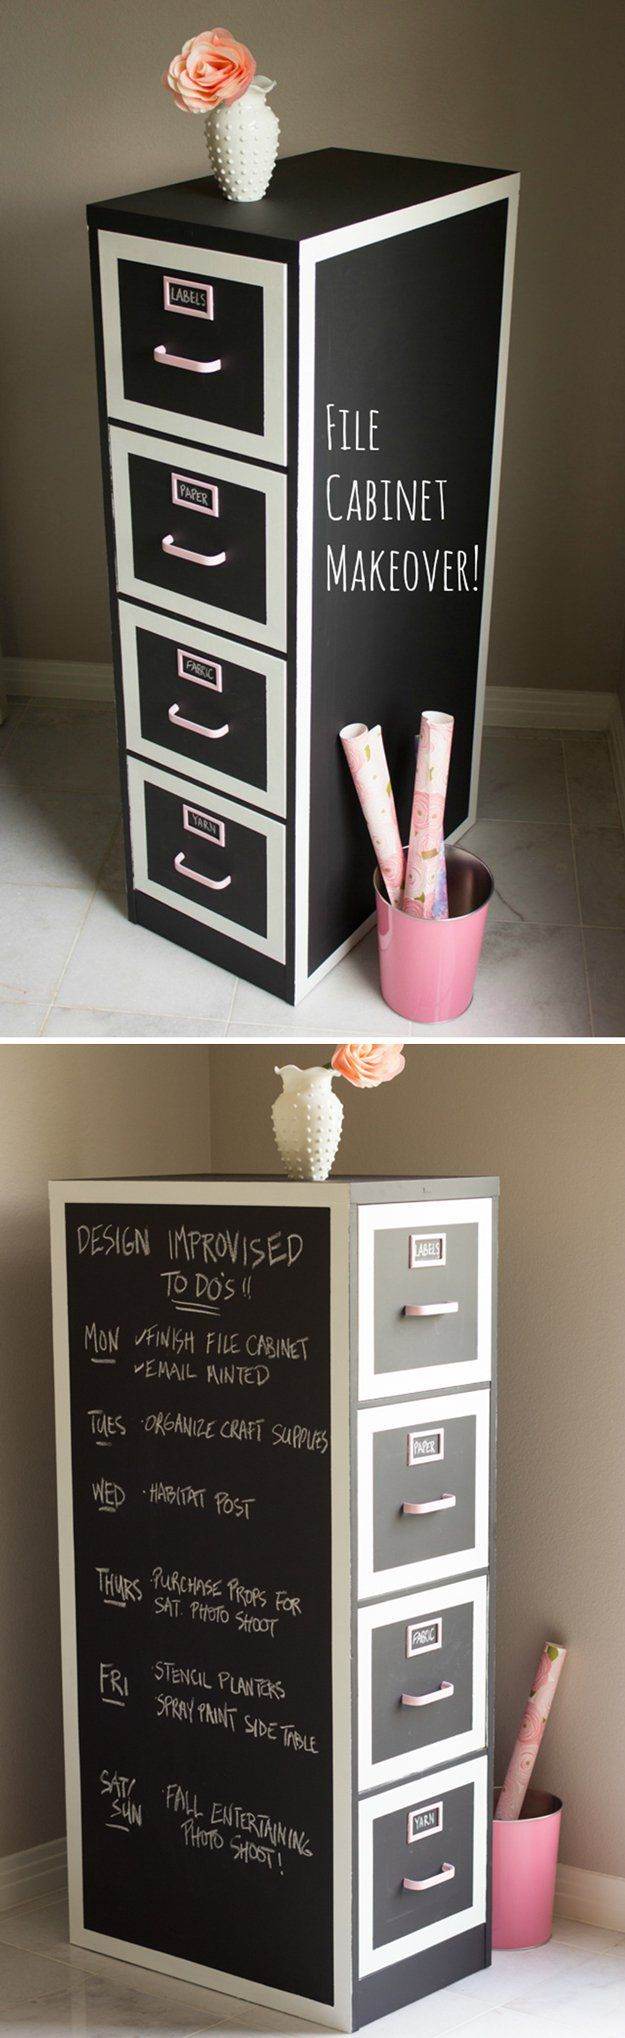 DIY Cabinets Makeover with Chalk Paint | File Cabinet Makeover by DIY Ready at…